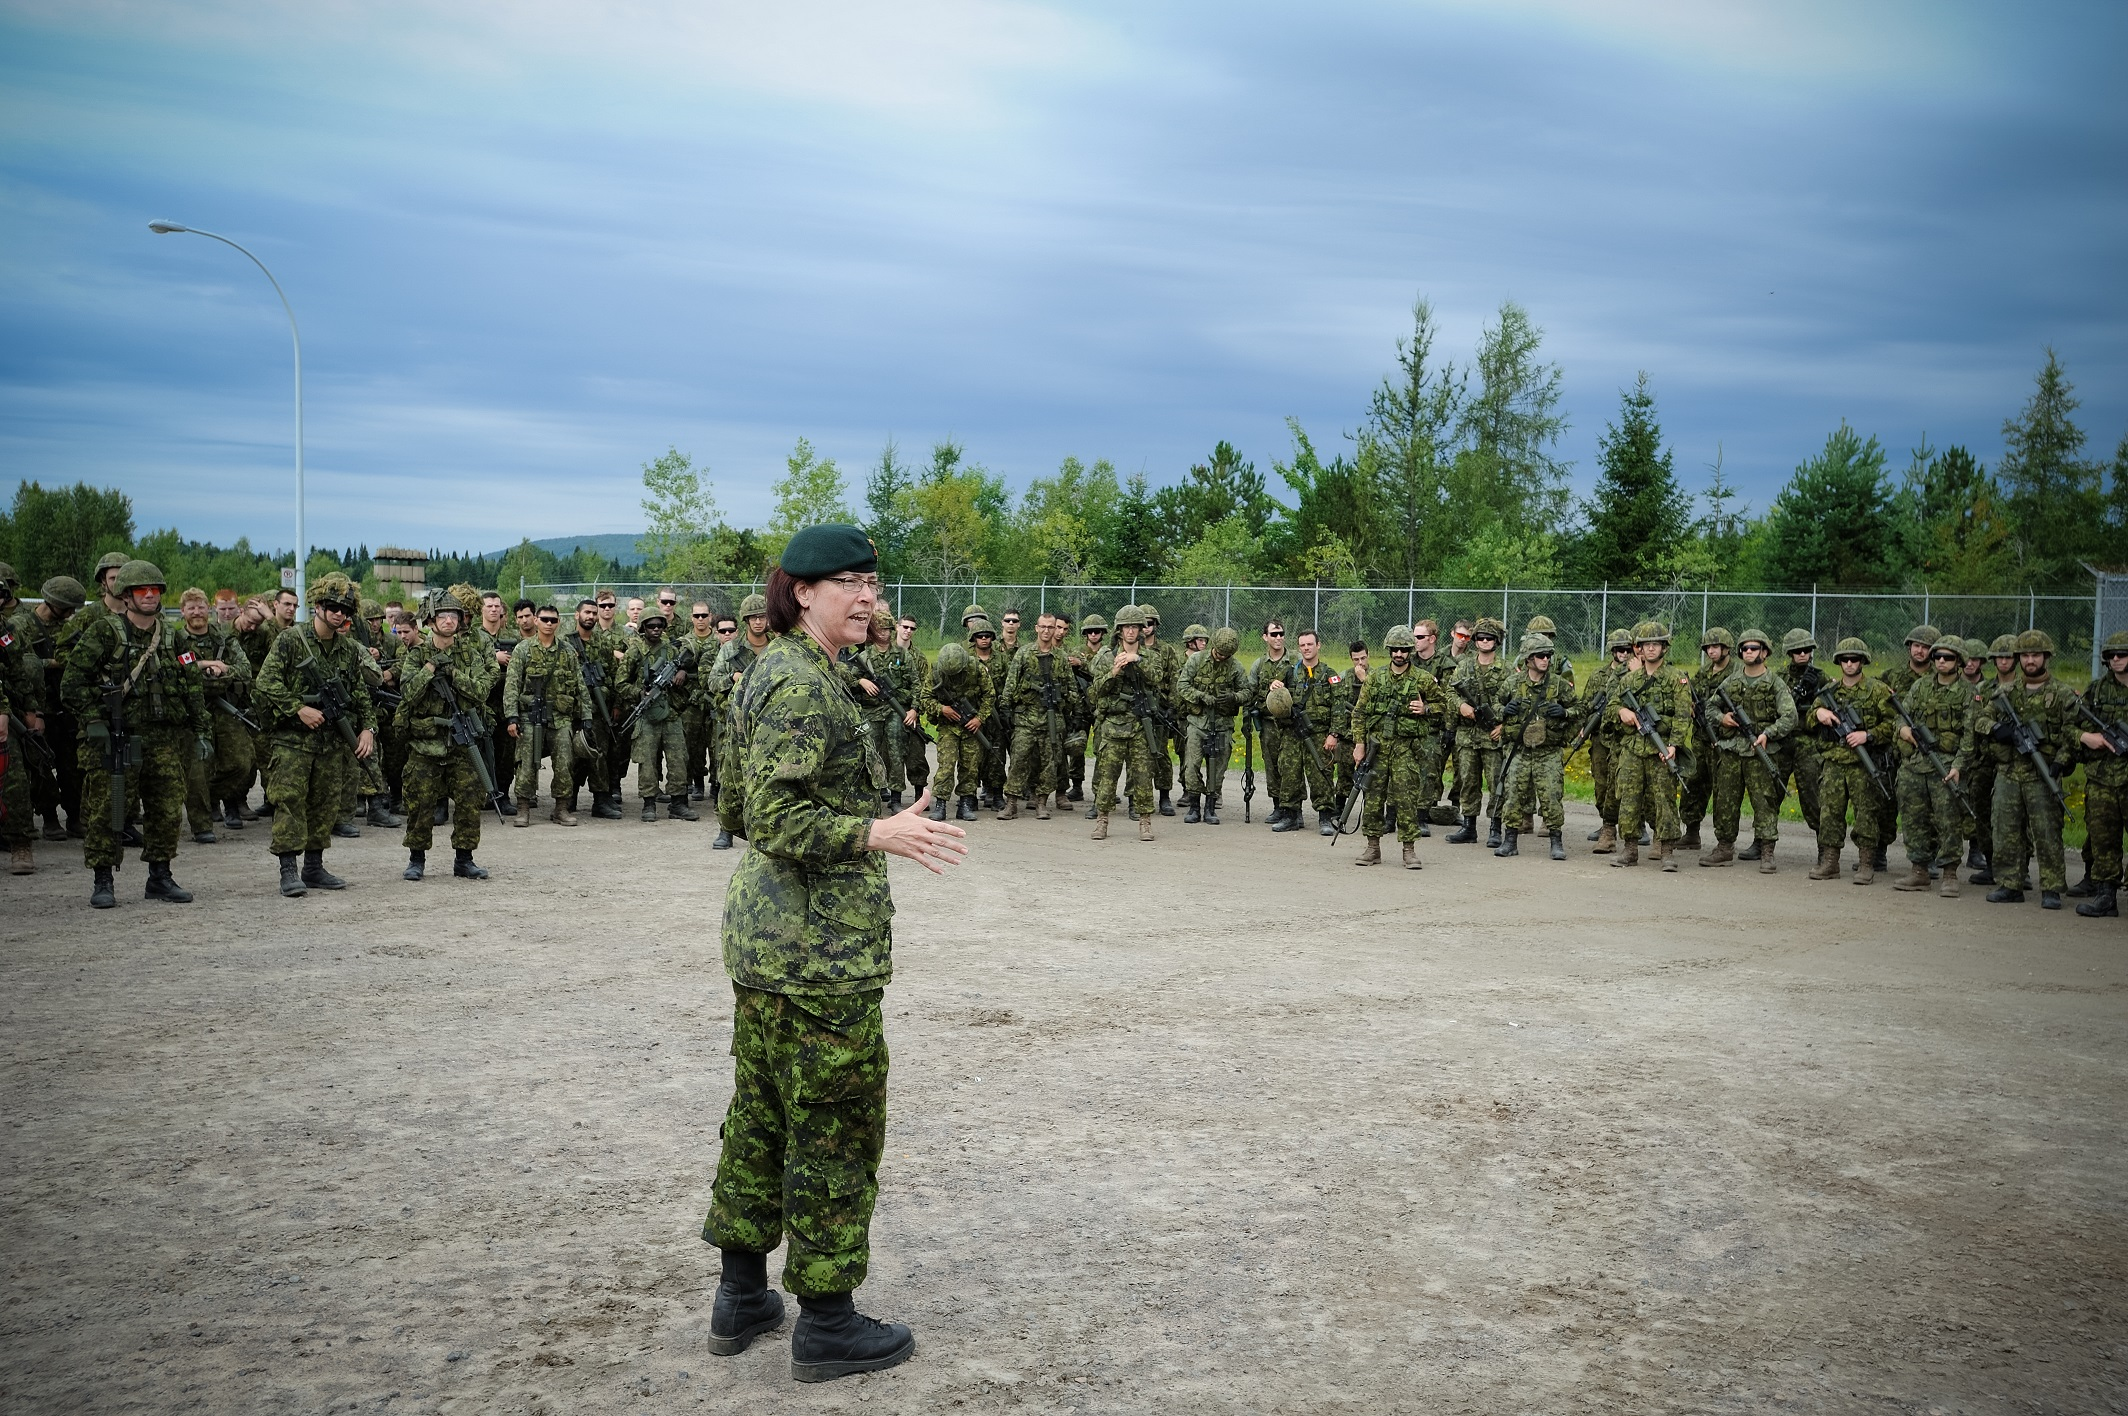 Colonel Josée Robidoux, Commander of 35 Canadian Brigade Group, addresses a large group of 34 Canadian Brigade Group members who had just completed a 13-kilometre march on August 16, 2015 in Valcartier, Quebec during Exercise NOBLE GUERRIER 2015. Photo by: Master Corporal Valérie Villeneuve ©2015 DND-MDN Canada.